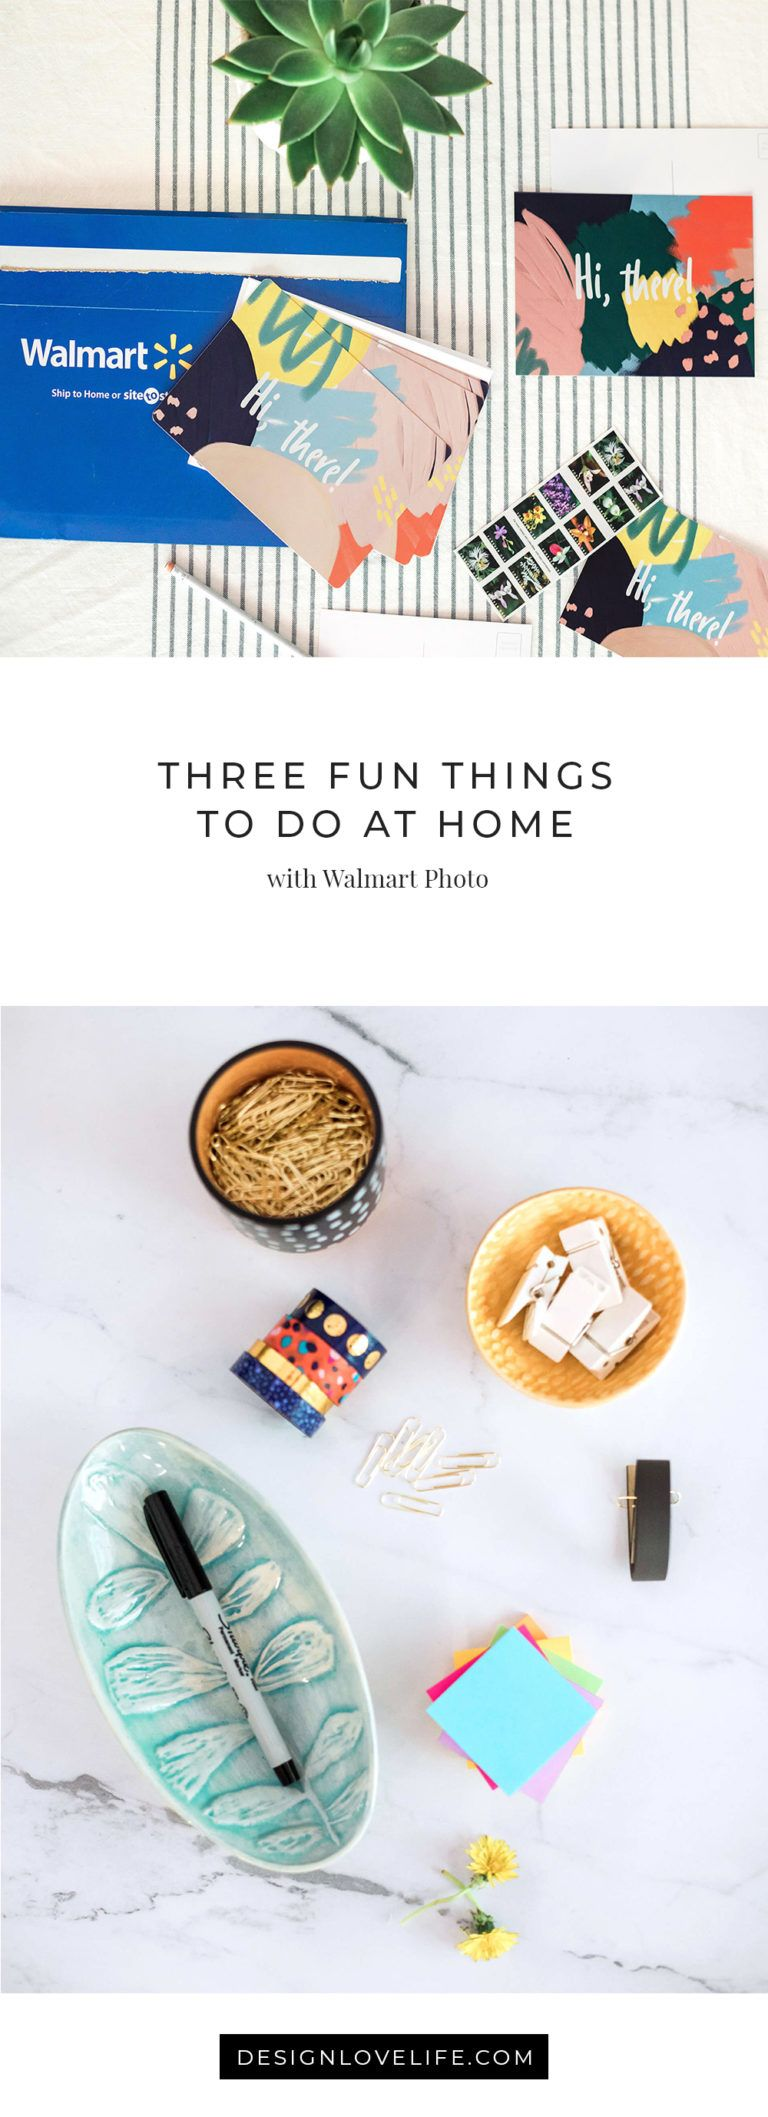 3 Fun Things To Do At Home With Walmart Photo And Design Love Life Things To Do At Home Fun Things To Do Walmart Photos